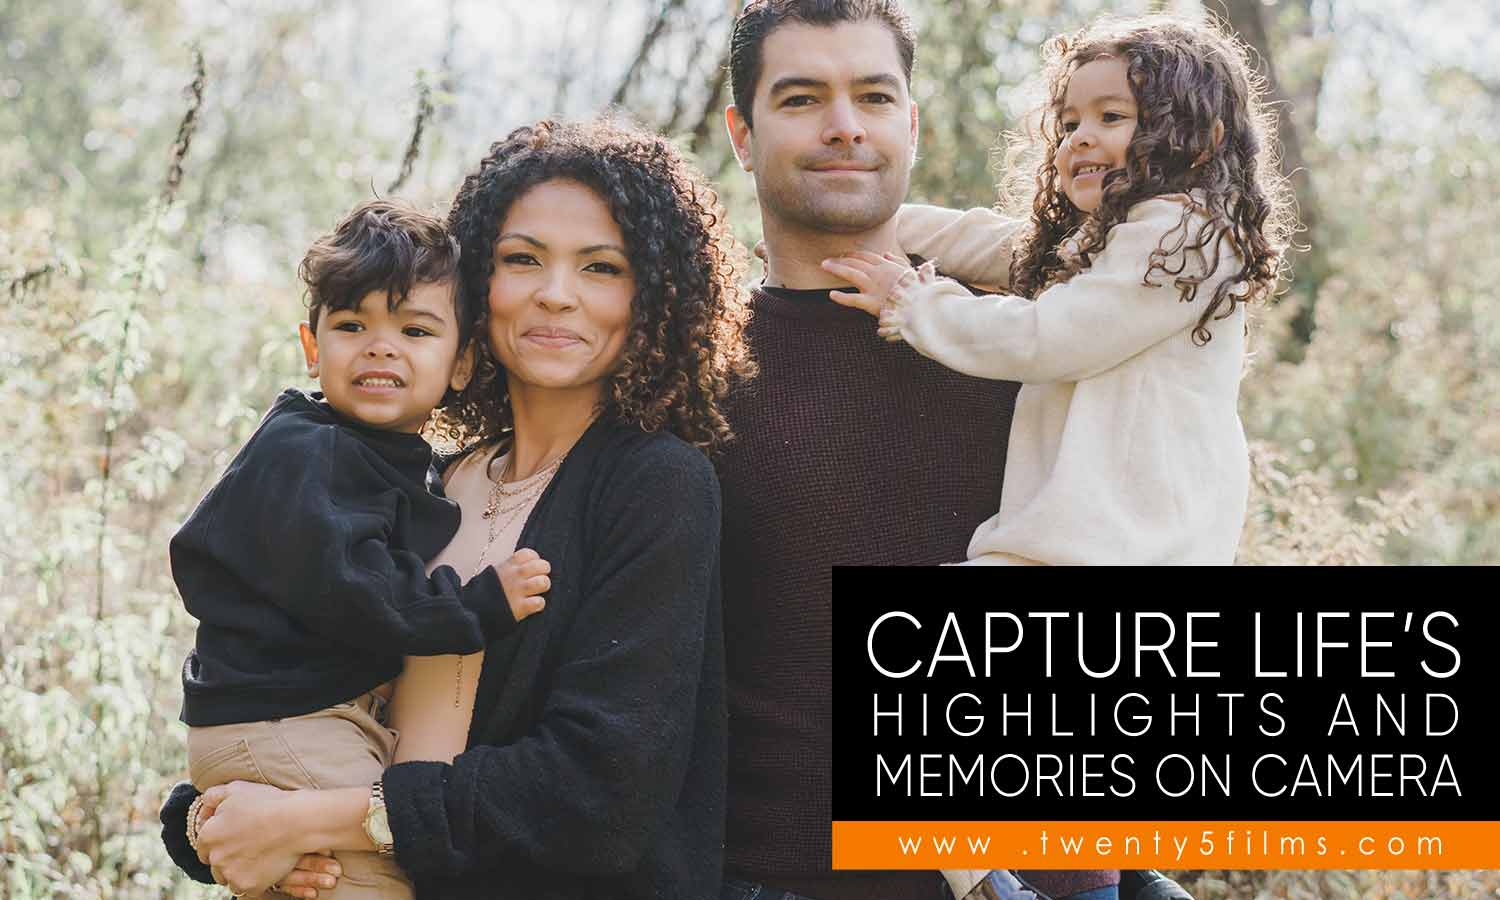 Capture life's highlights and memories on camera